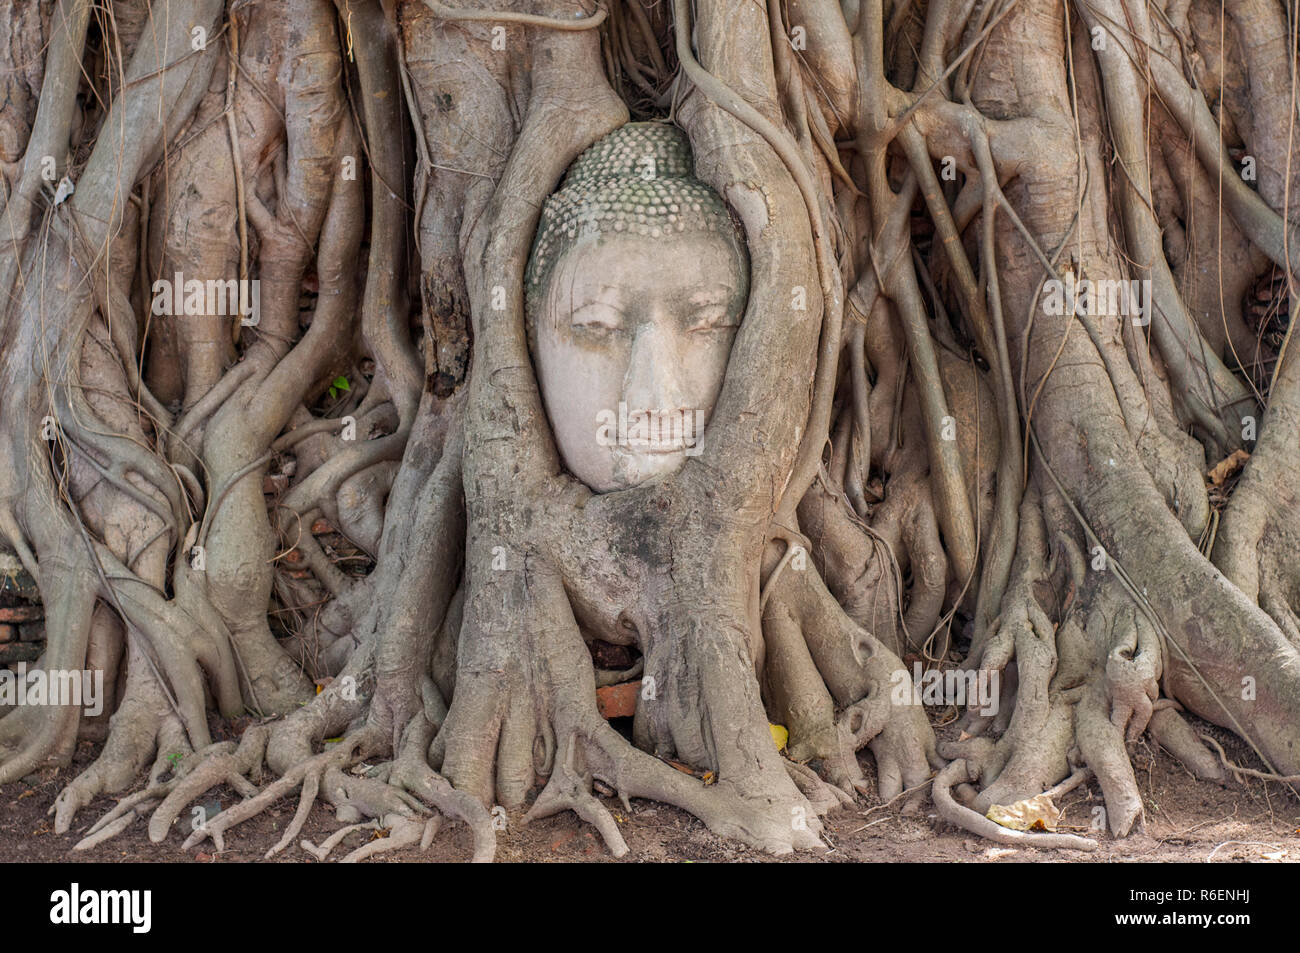 Large Stone Buddha Head In Fig Tree Roots, Wat Mahathat, Ayutthaya City, Thailand, Southeast Asia, Asia Stock Photo